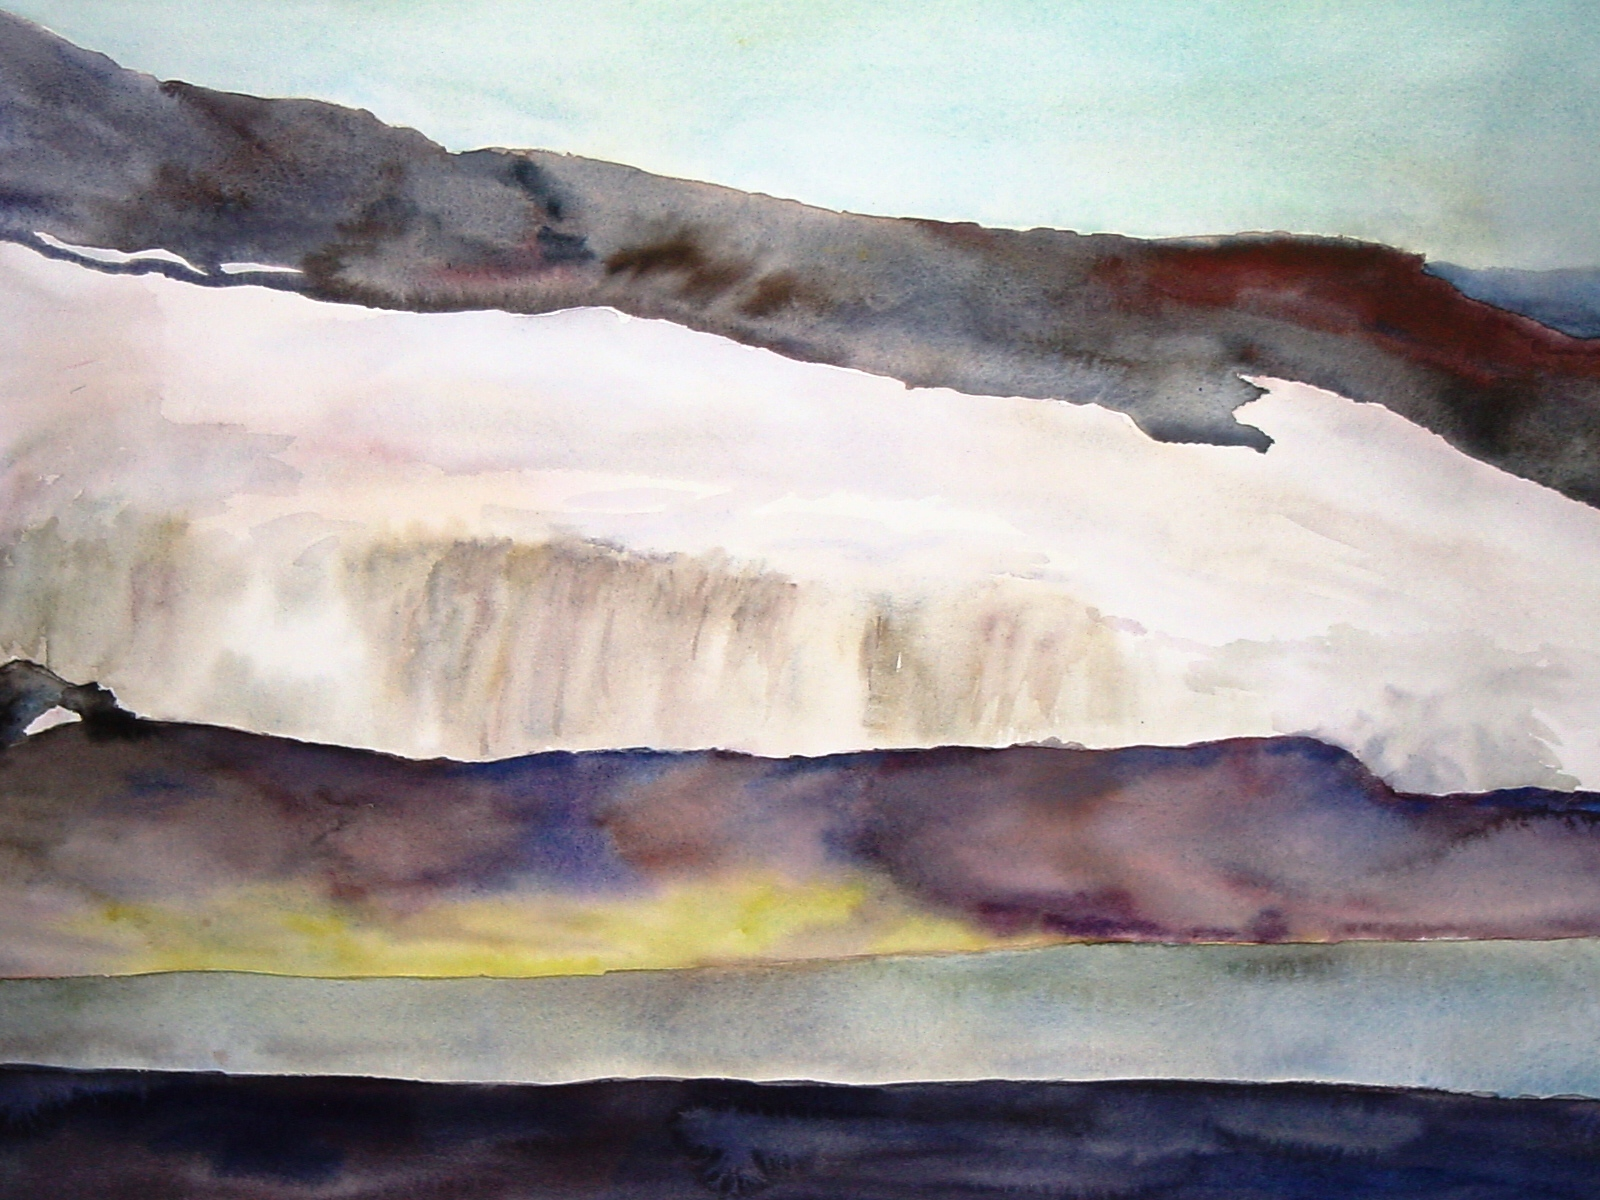 "Landscape with Lichen, Antarctica; 18x24"" watercolor painting by Lisa Goren"